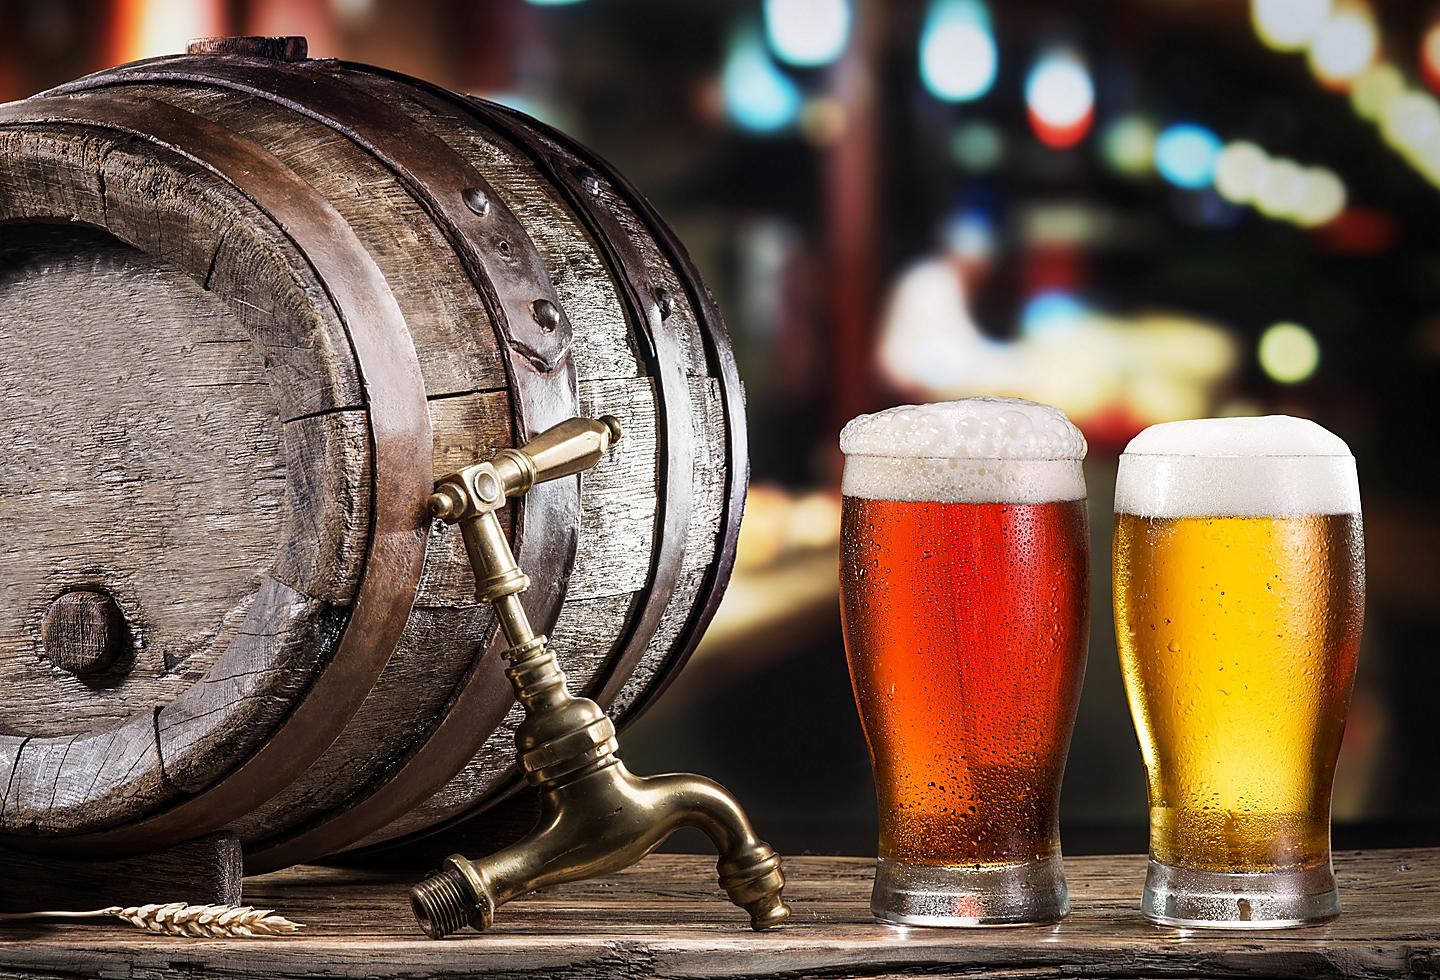 Glasses of Beer and Barrel at Dry River Brewing